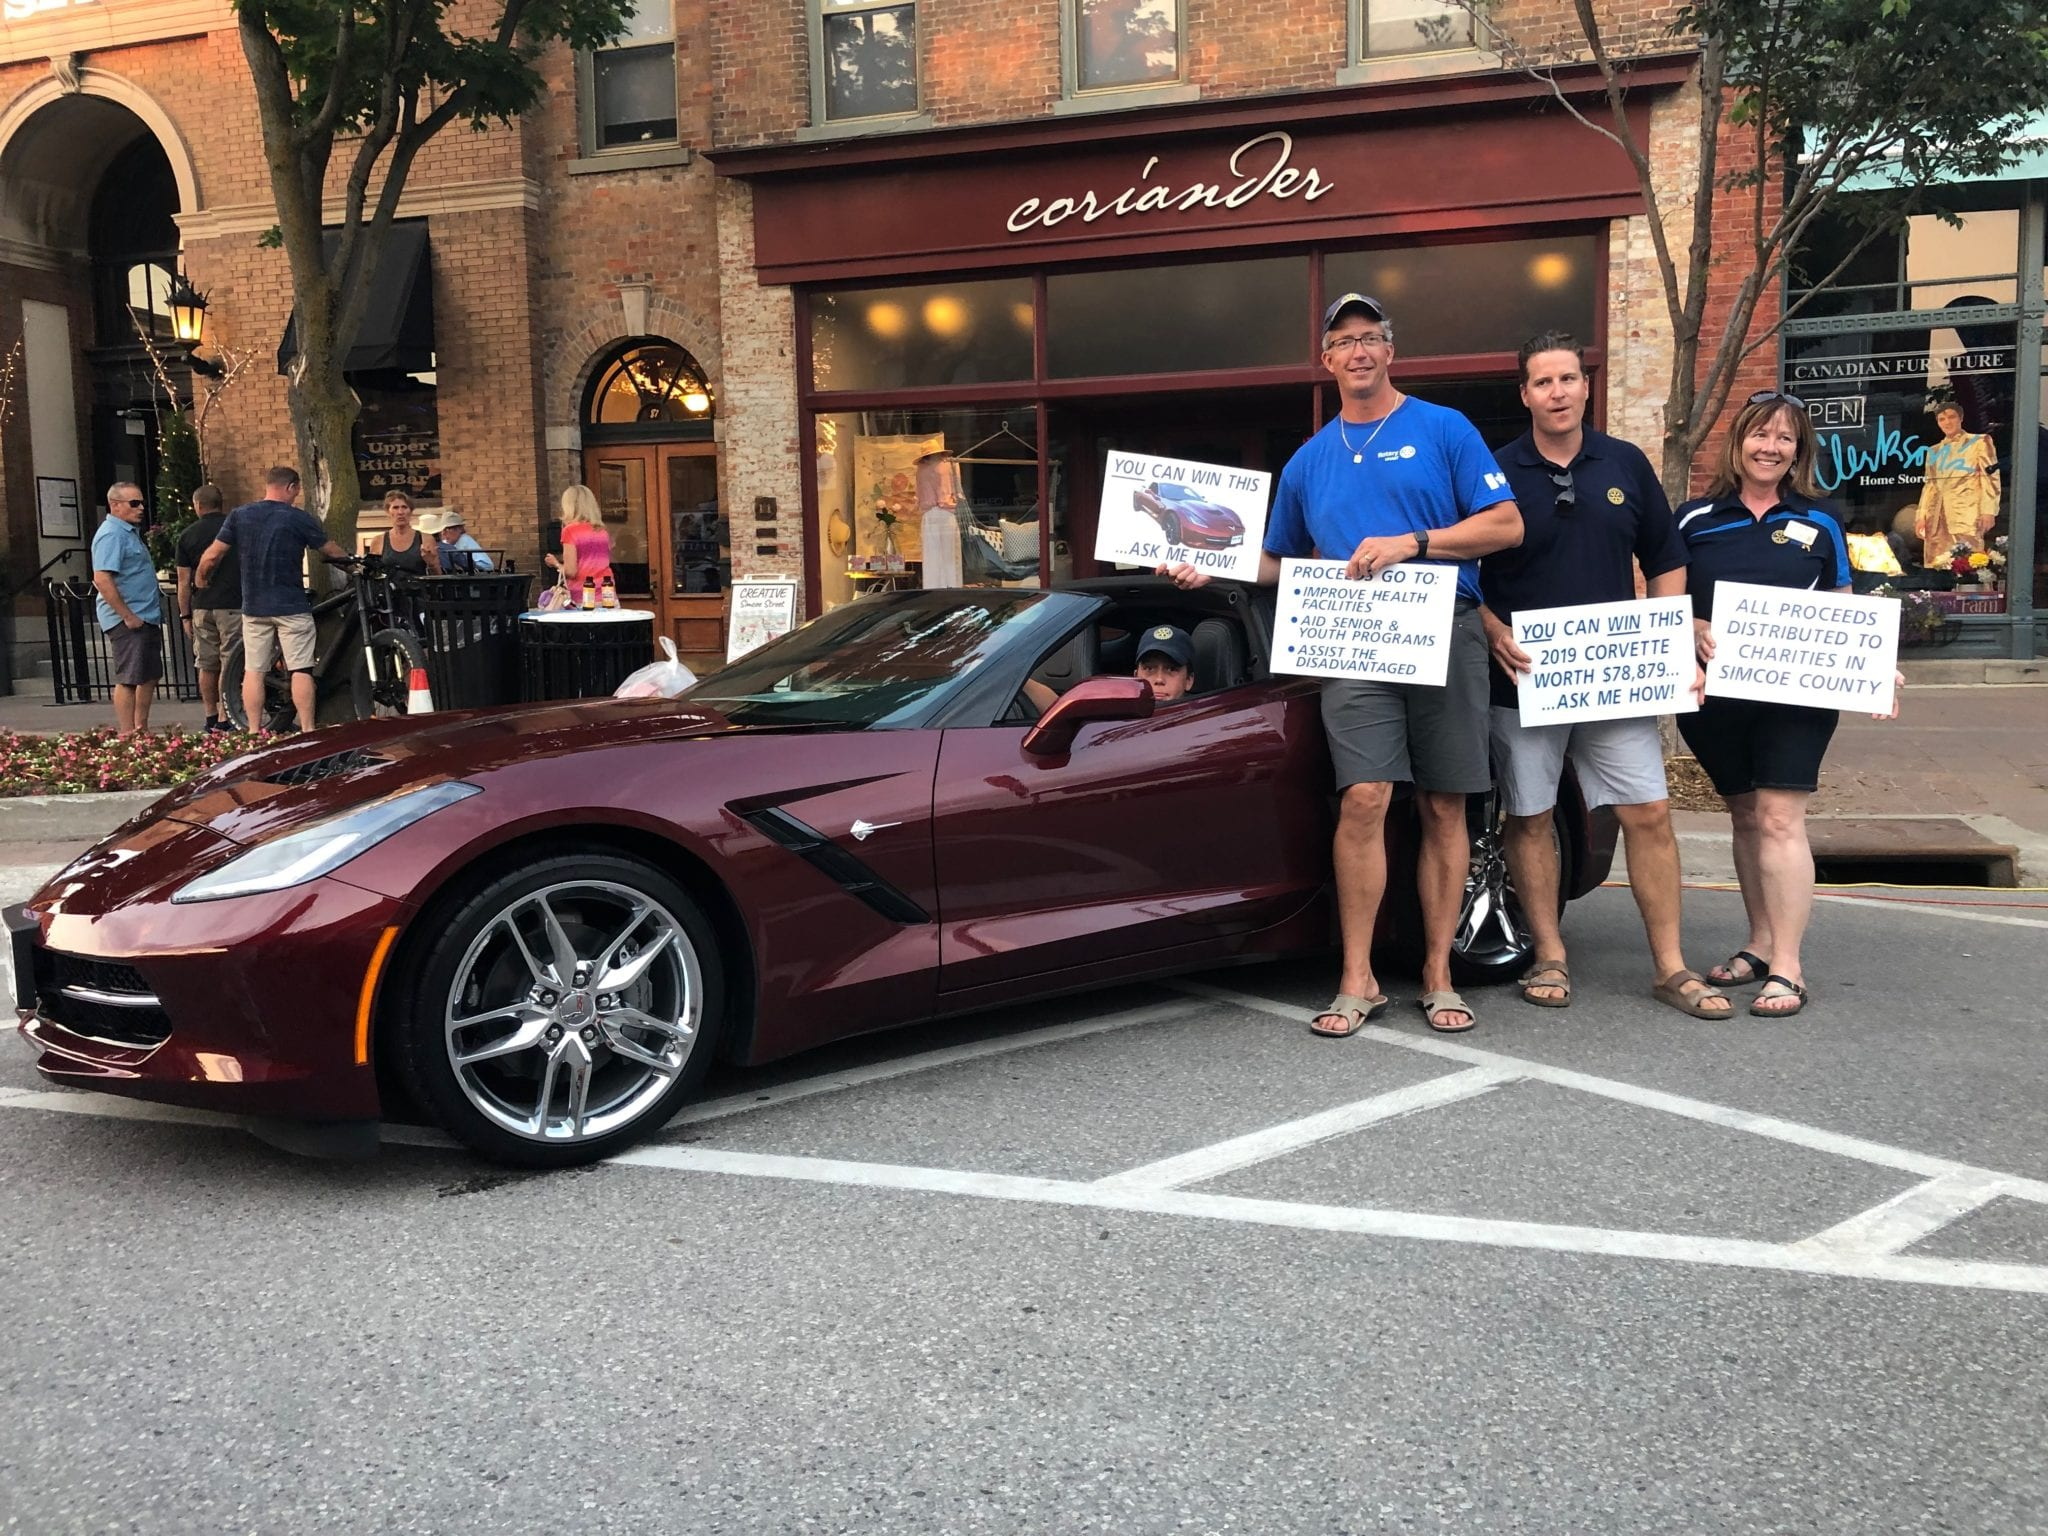 Corvette Lottery Ticket Sales Locations